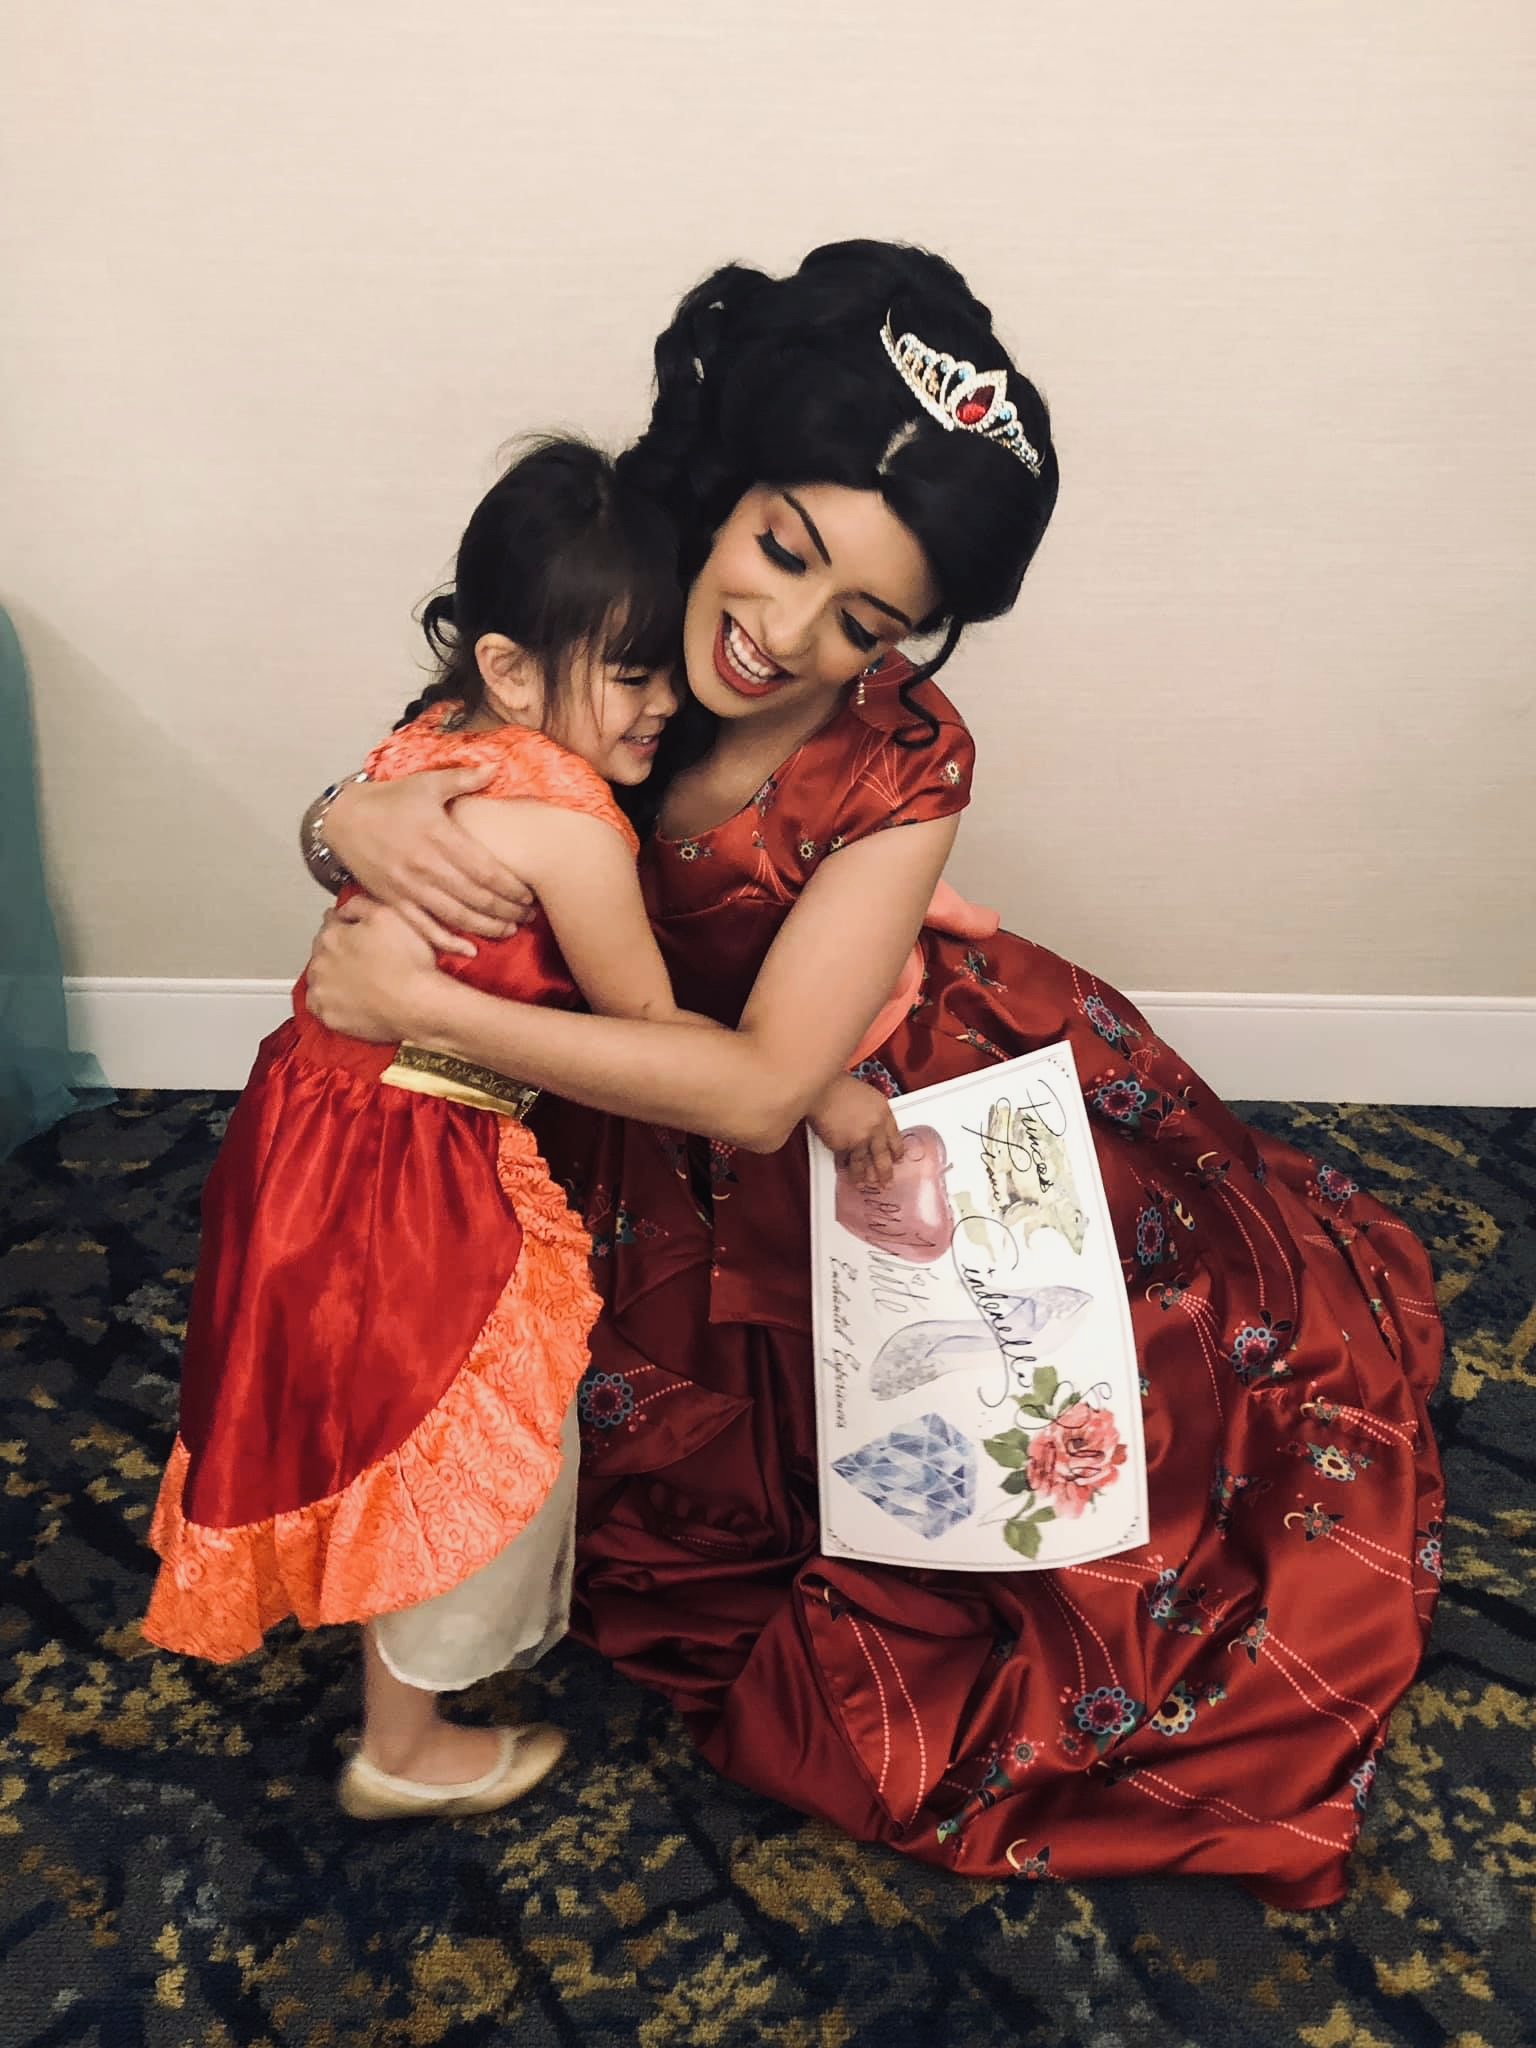 Matching Dresses with Latina Princess